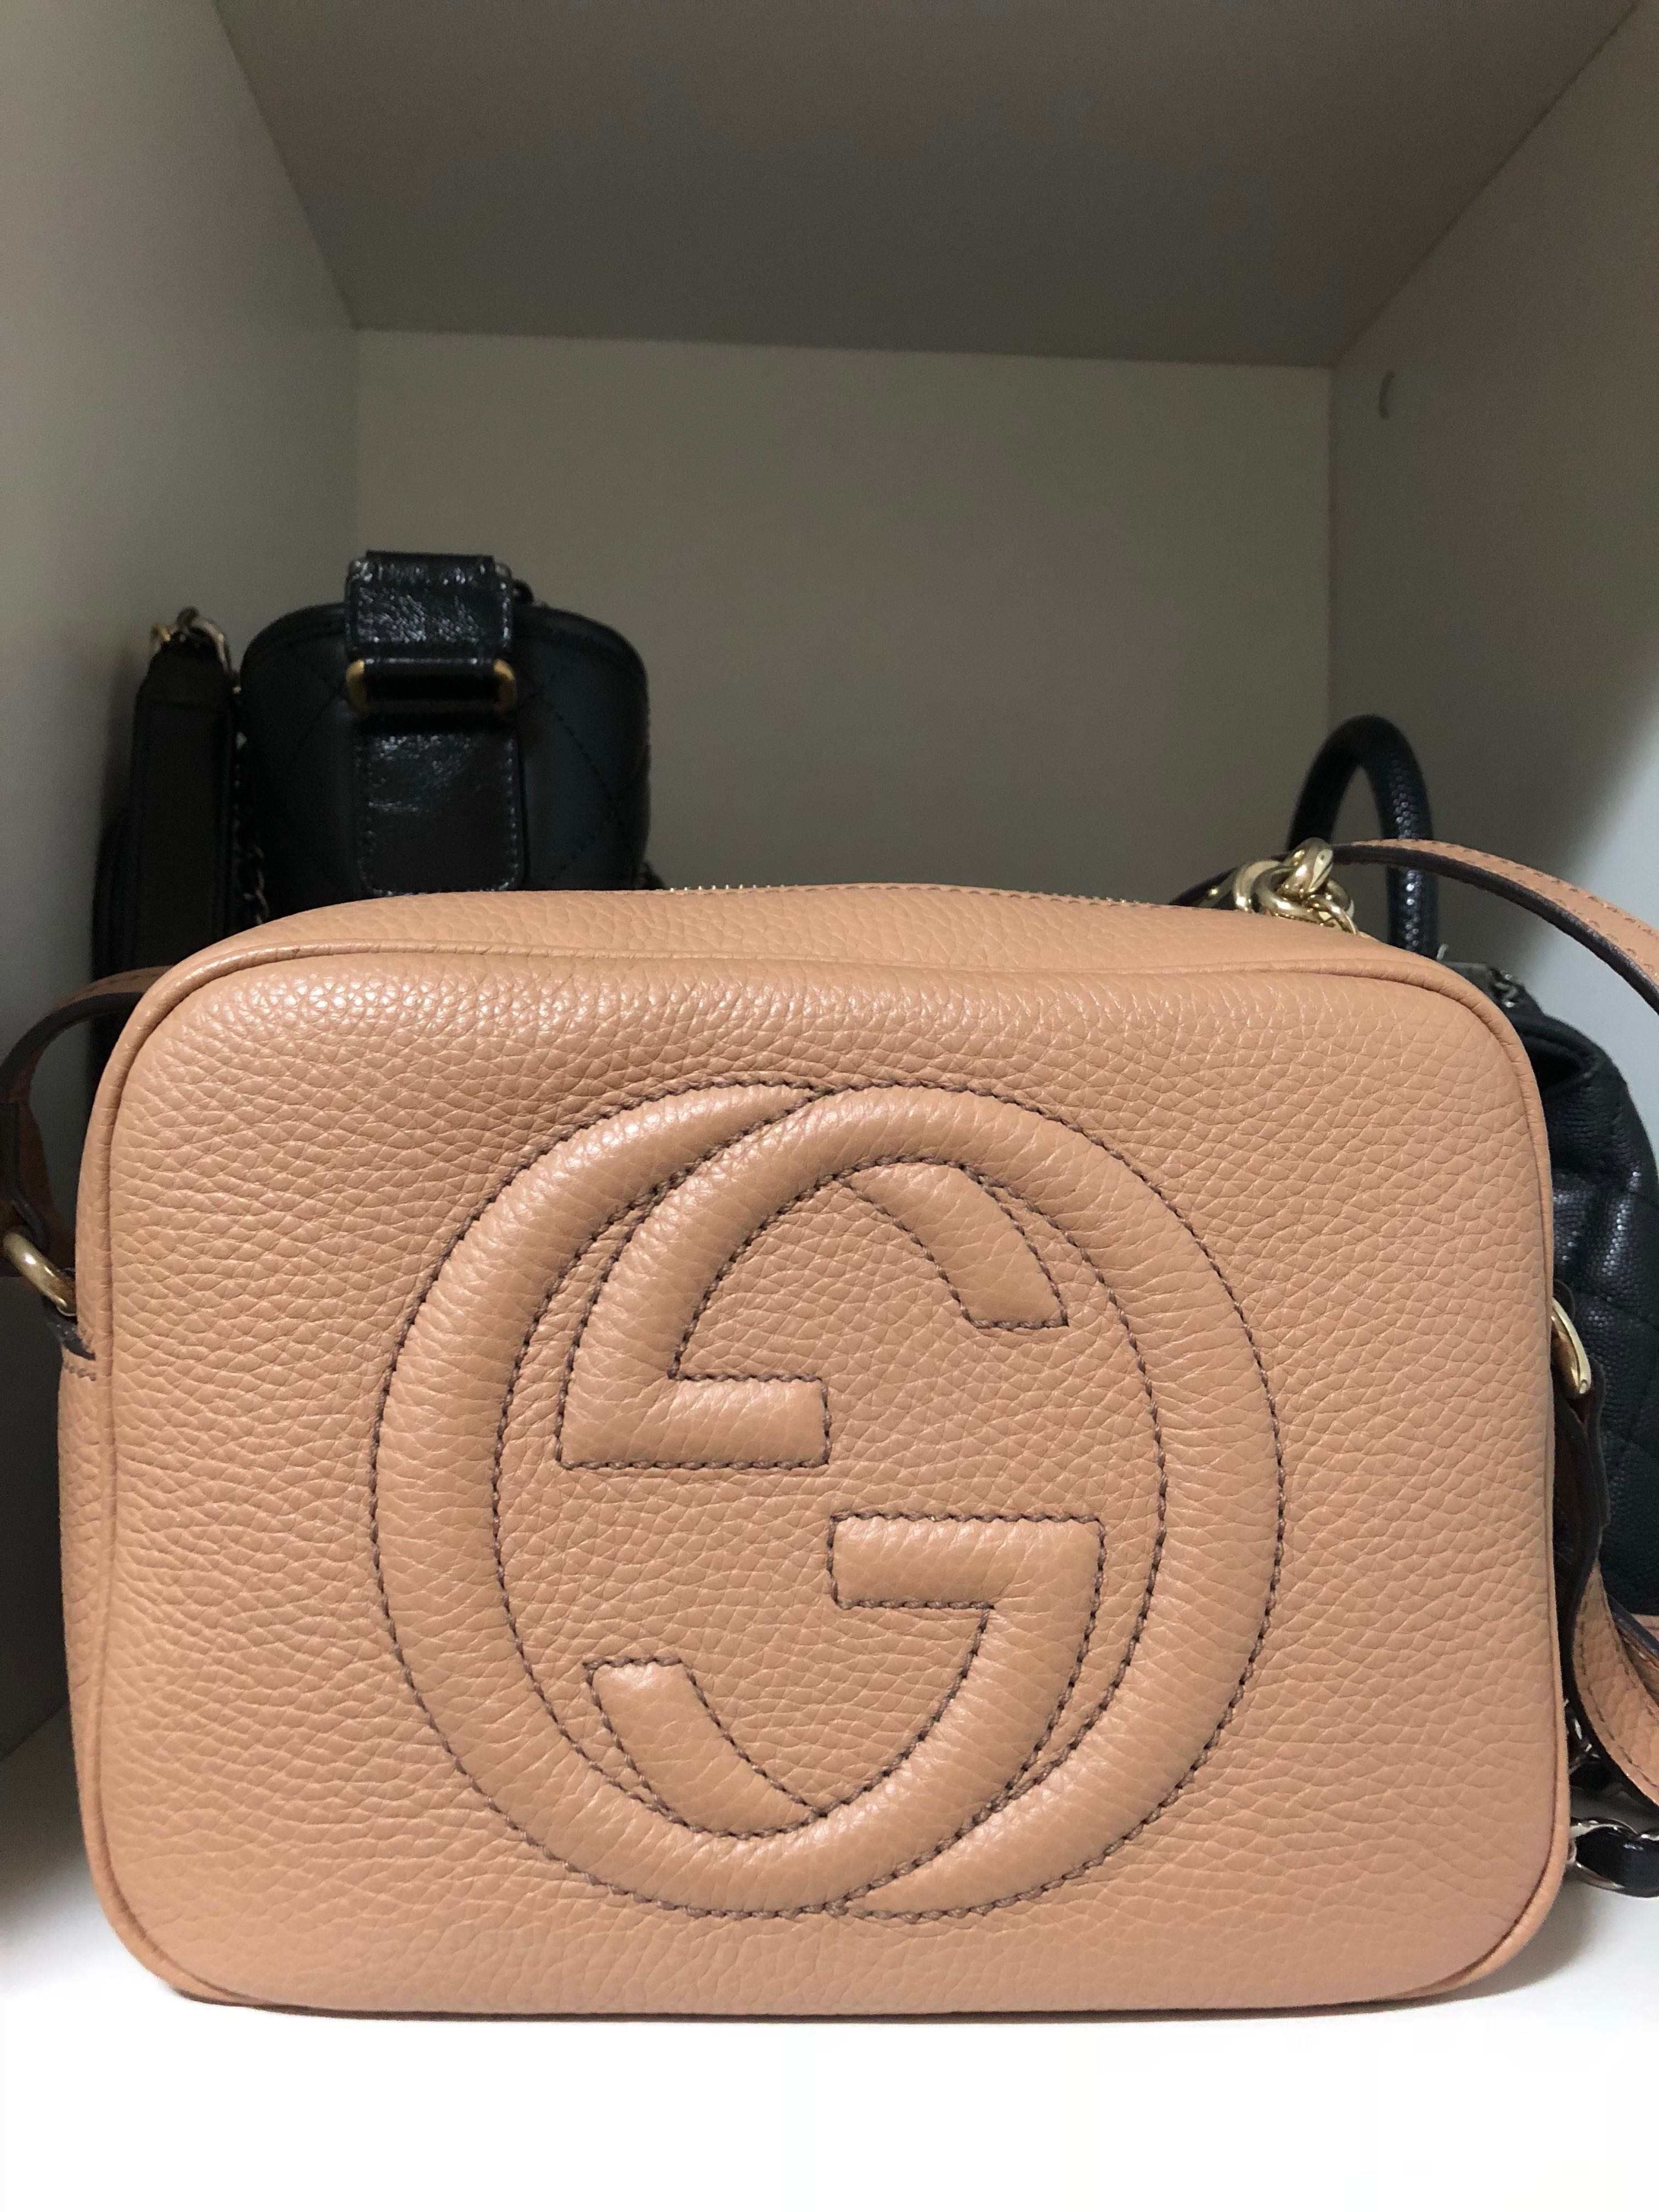 349cbc817851 Gucci Soho Disco Bag, Luxury, Bags & Wallets, Sling Bags on Carousell